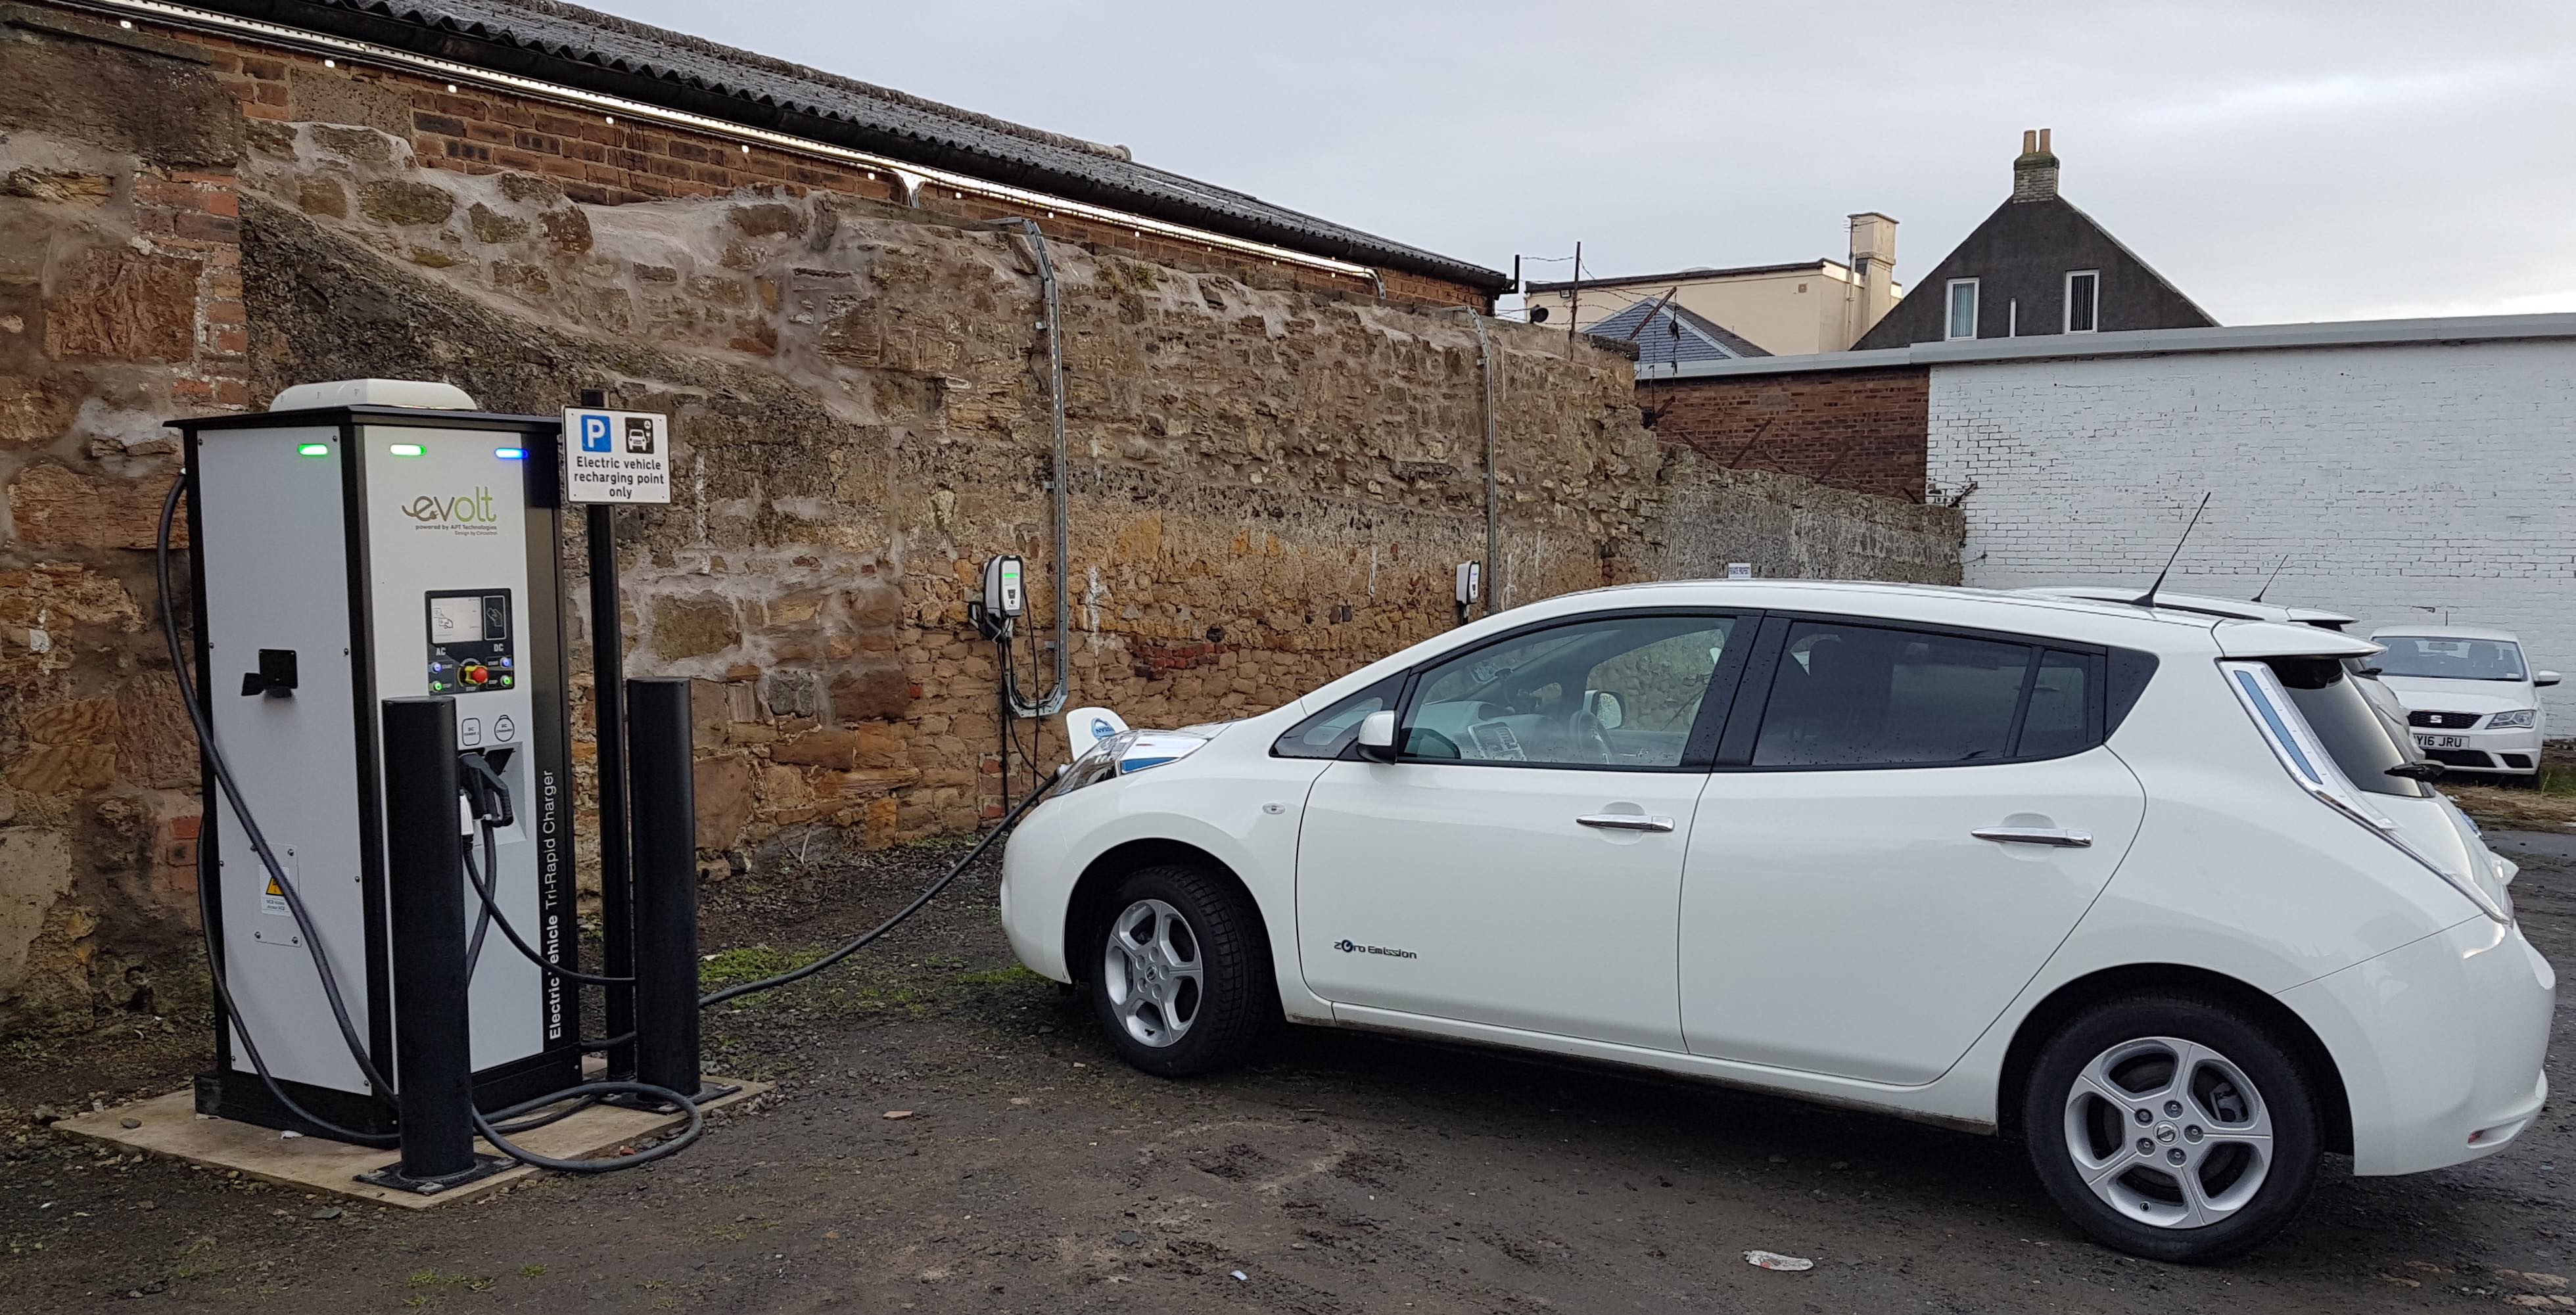 Central Kirkcaldy electric vehicle charge point